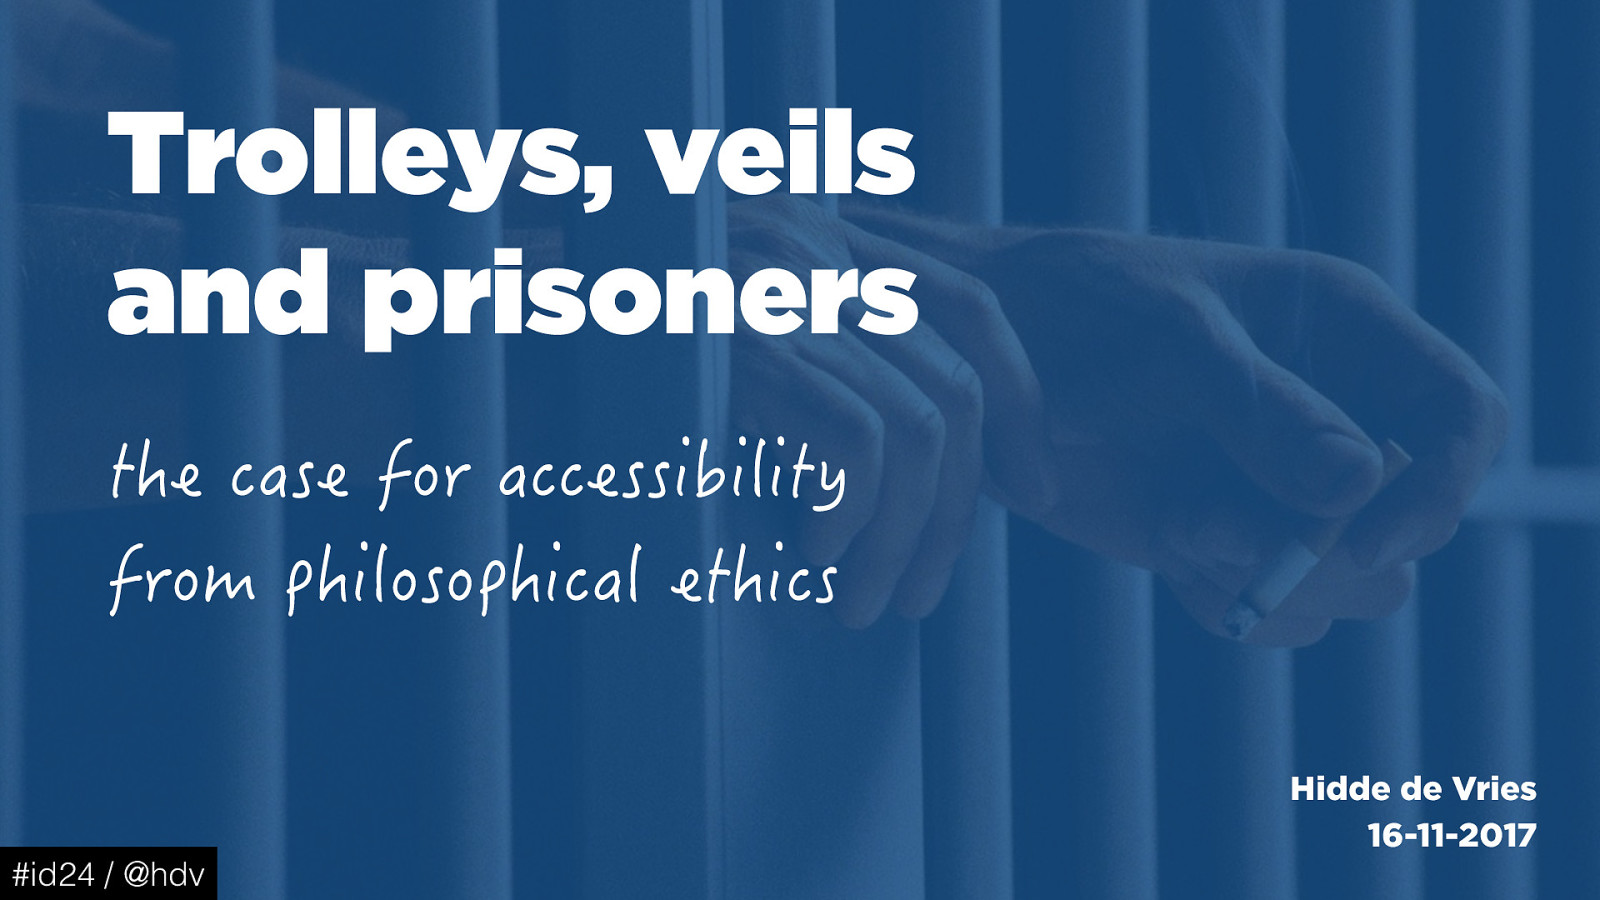 Trolleys, veils and prisoners: the case for accessibility from philosophical ethics